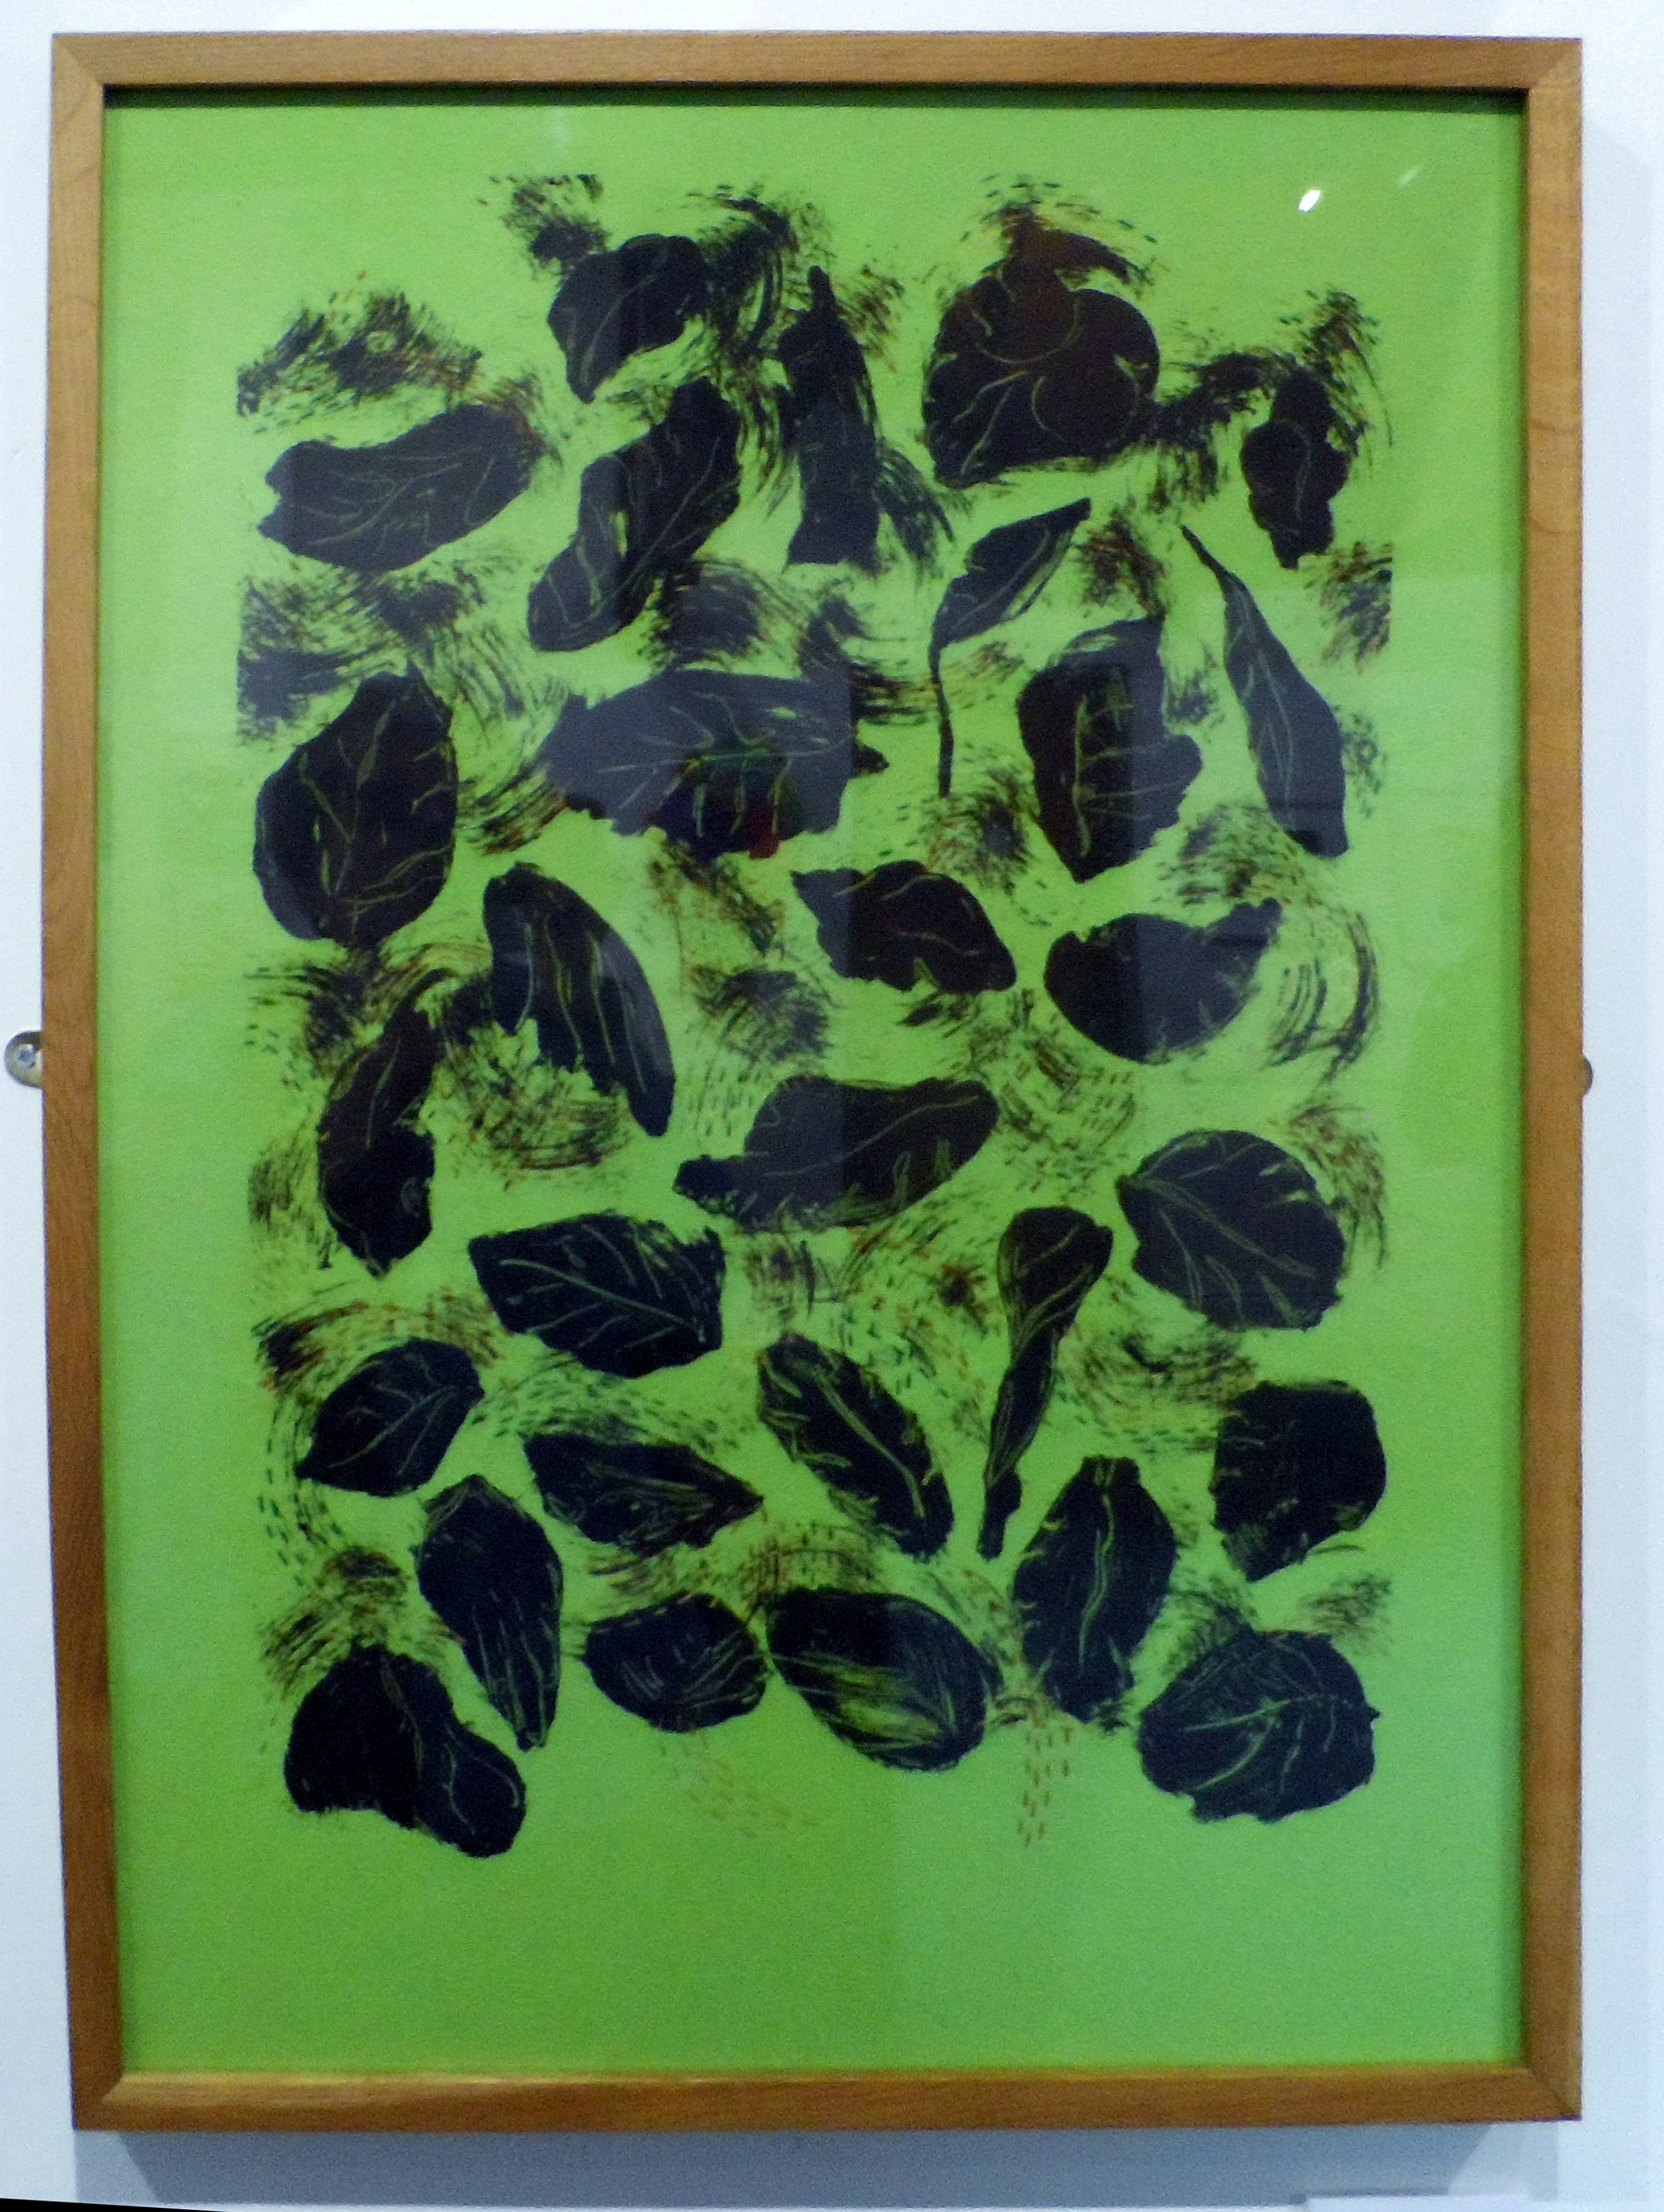 AUTUMN by Janet Wilkinson, screen-print & stitch, Re-View Textile Group, Frodsham 2019